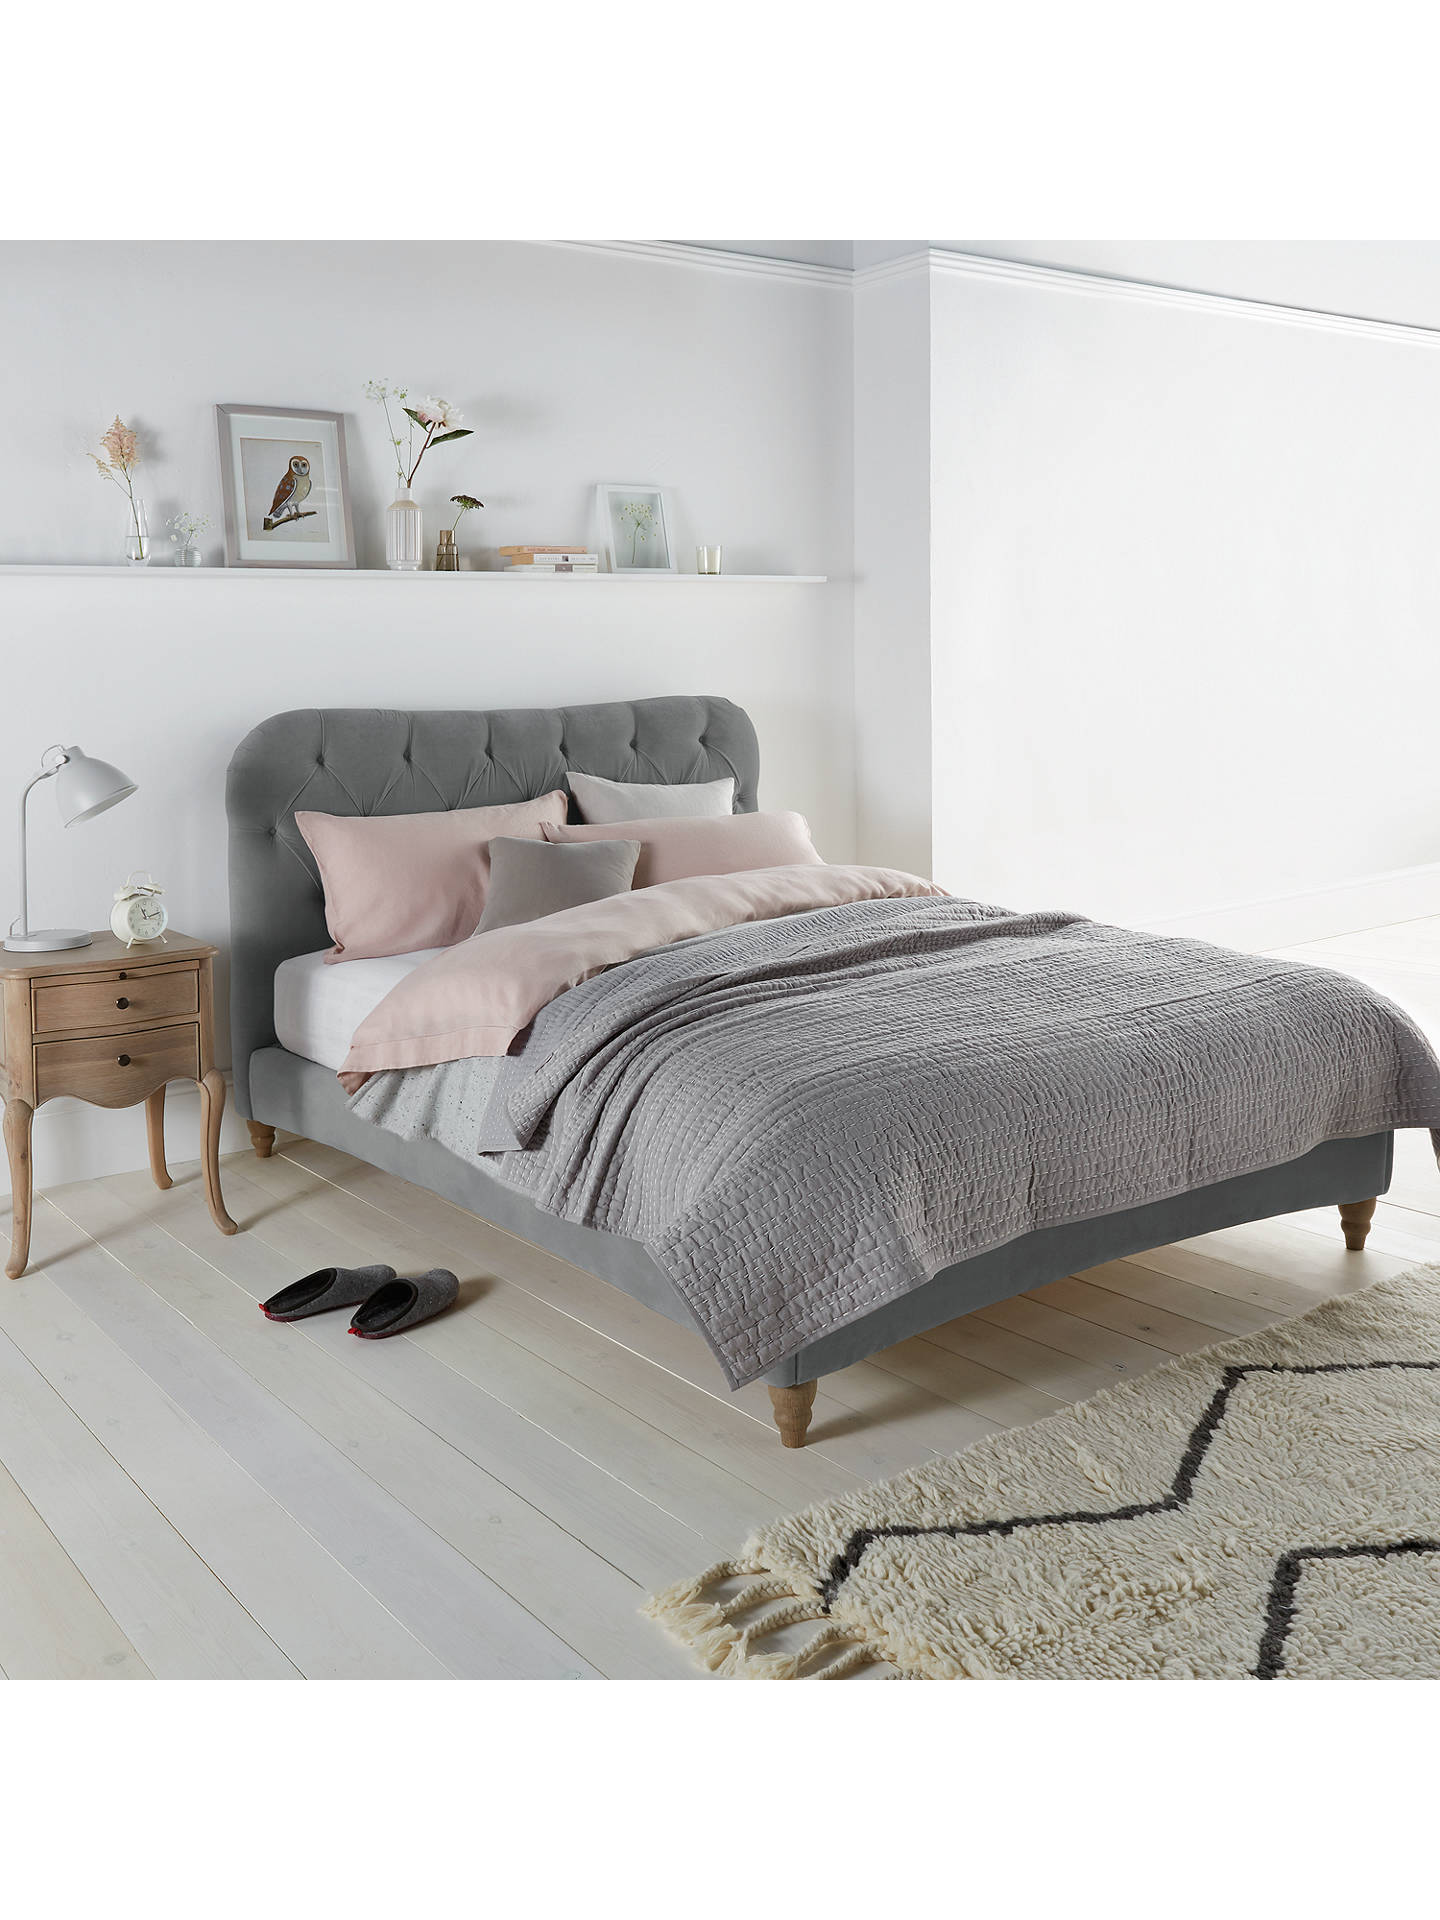 Buy Brioche Bed Frame by Loaf at John Lewis in Clever Linen, Super King Size, Meteor Grey Online at johnlewis.com